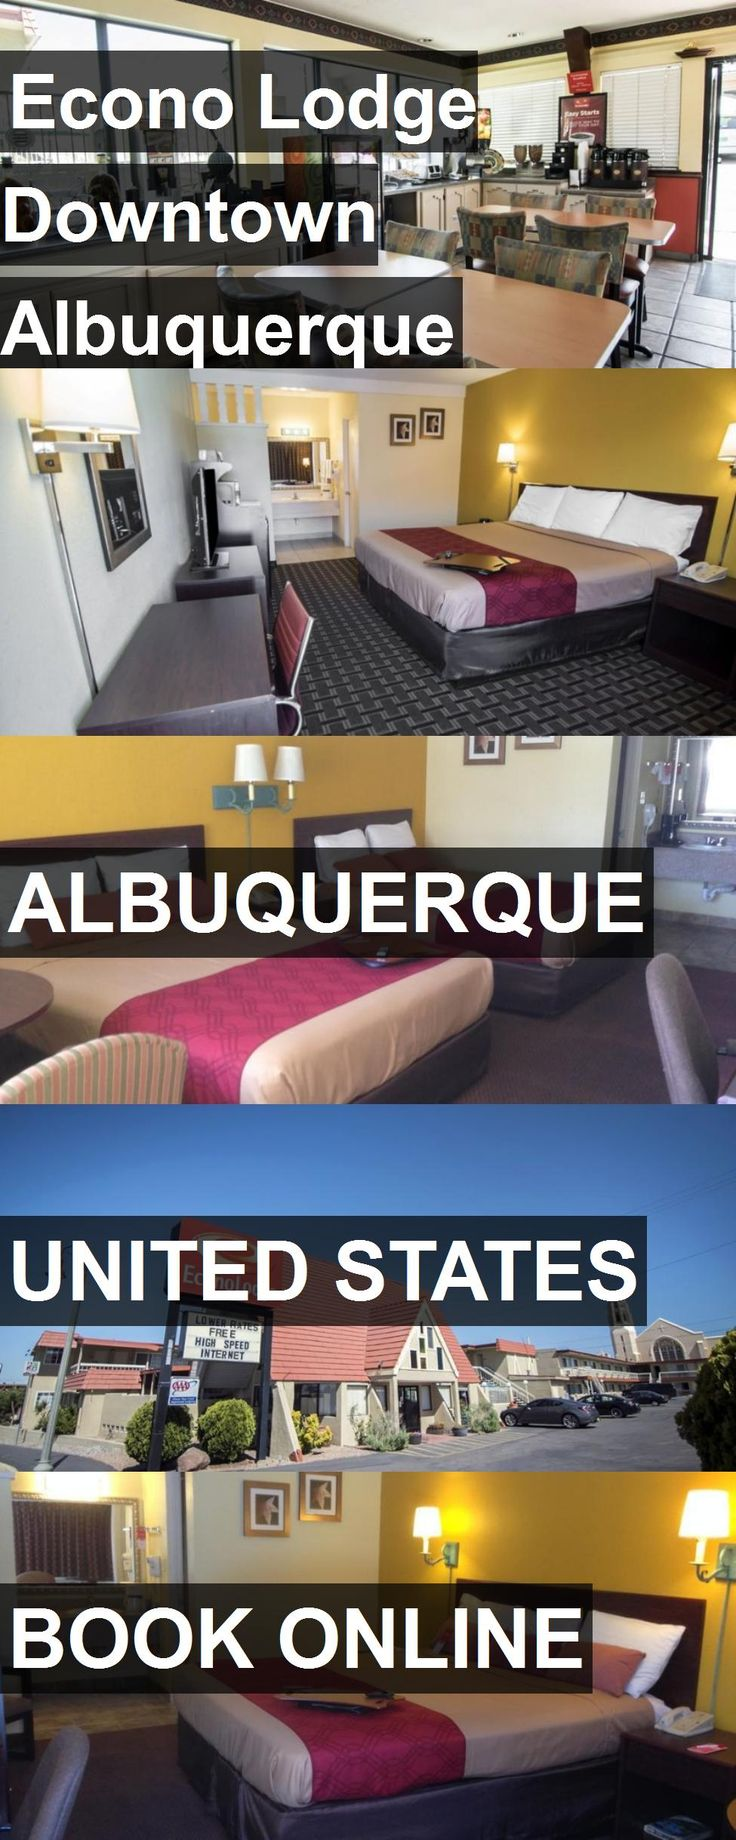 Hotel Econo Lodge Downtown Albuquerque in Albuquerque, United States. For more information, photos, reviews and best prices please follow the link. #UnitedStates #Albuquerque #EconoLodgeDowntownAlbuquerque #hotel #travel #vacation